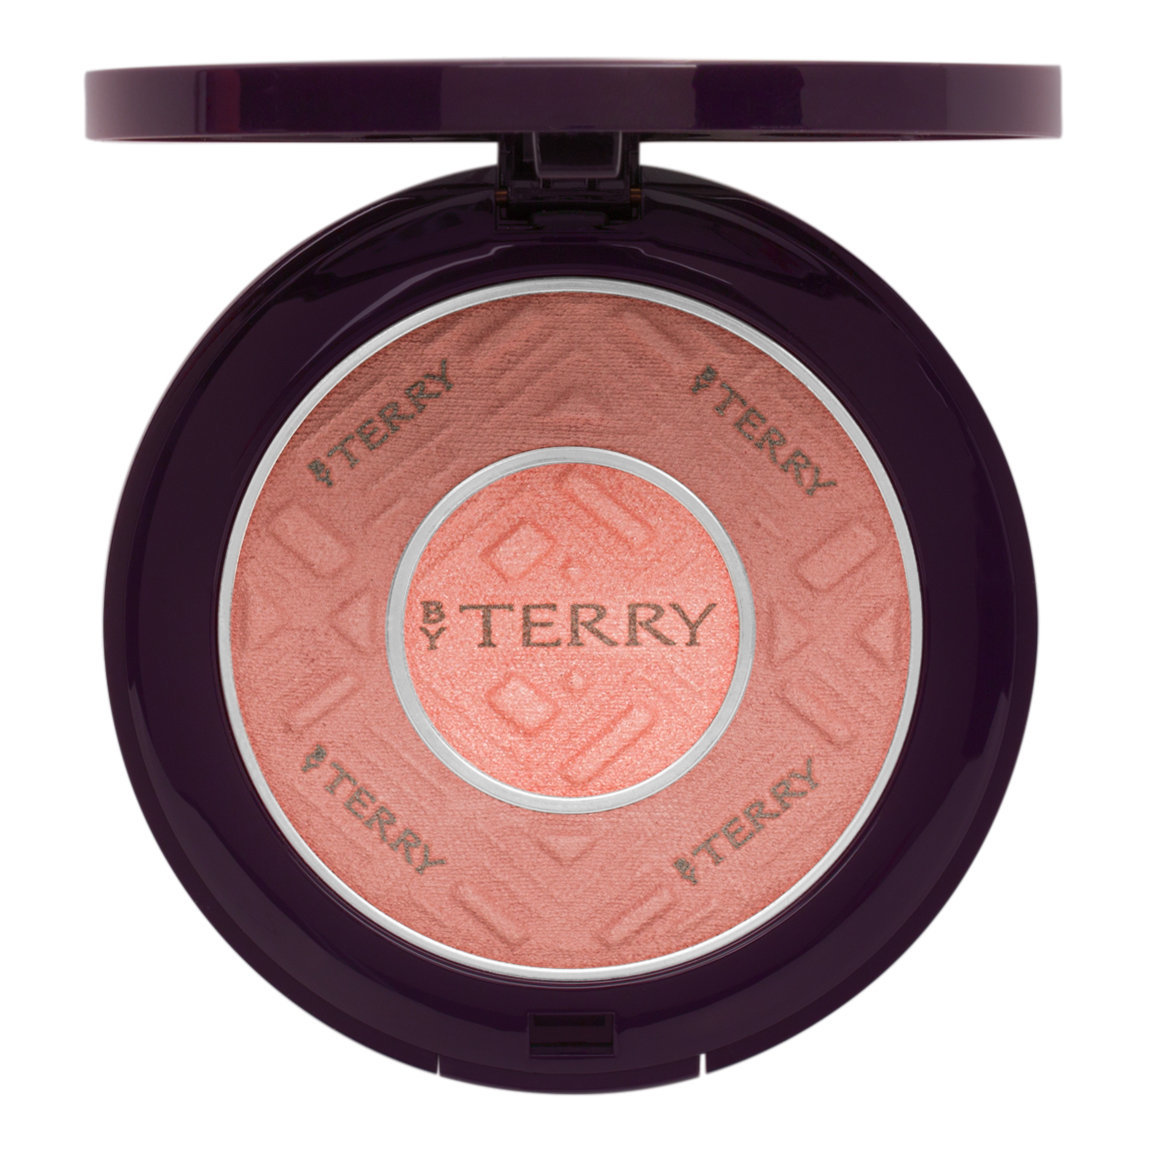 BY TERRY Compact-Expert Dual Powder 7 Sun Desire product smear.